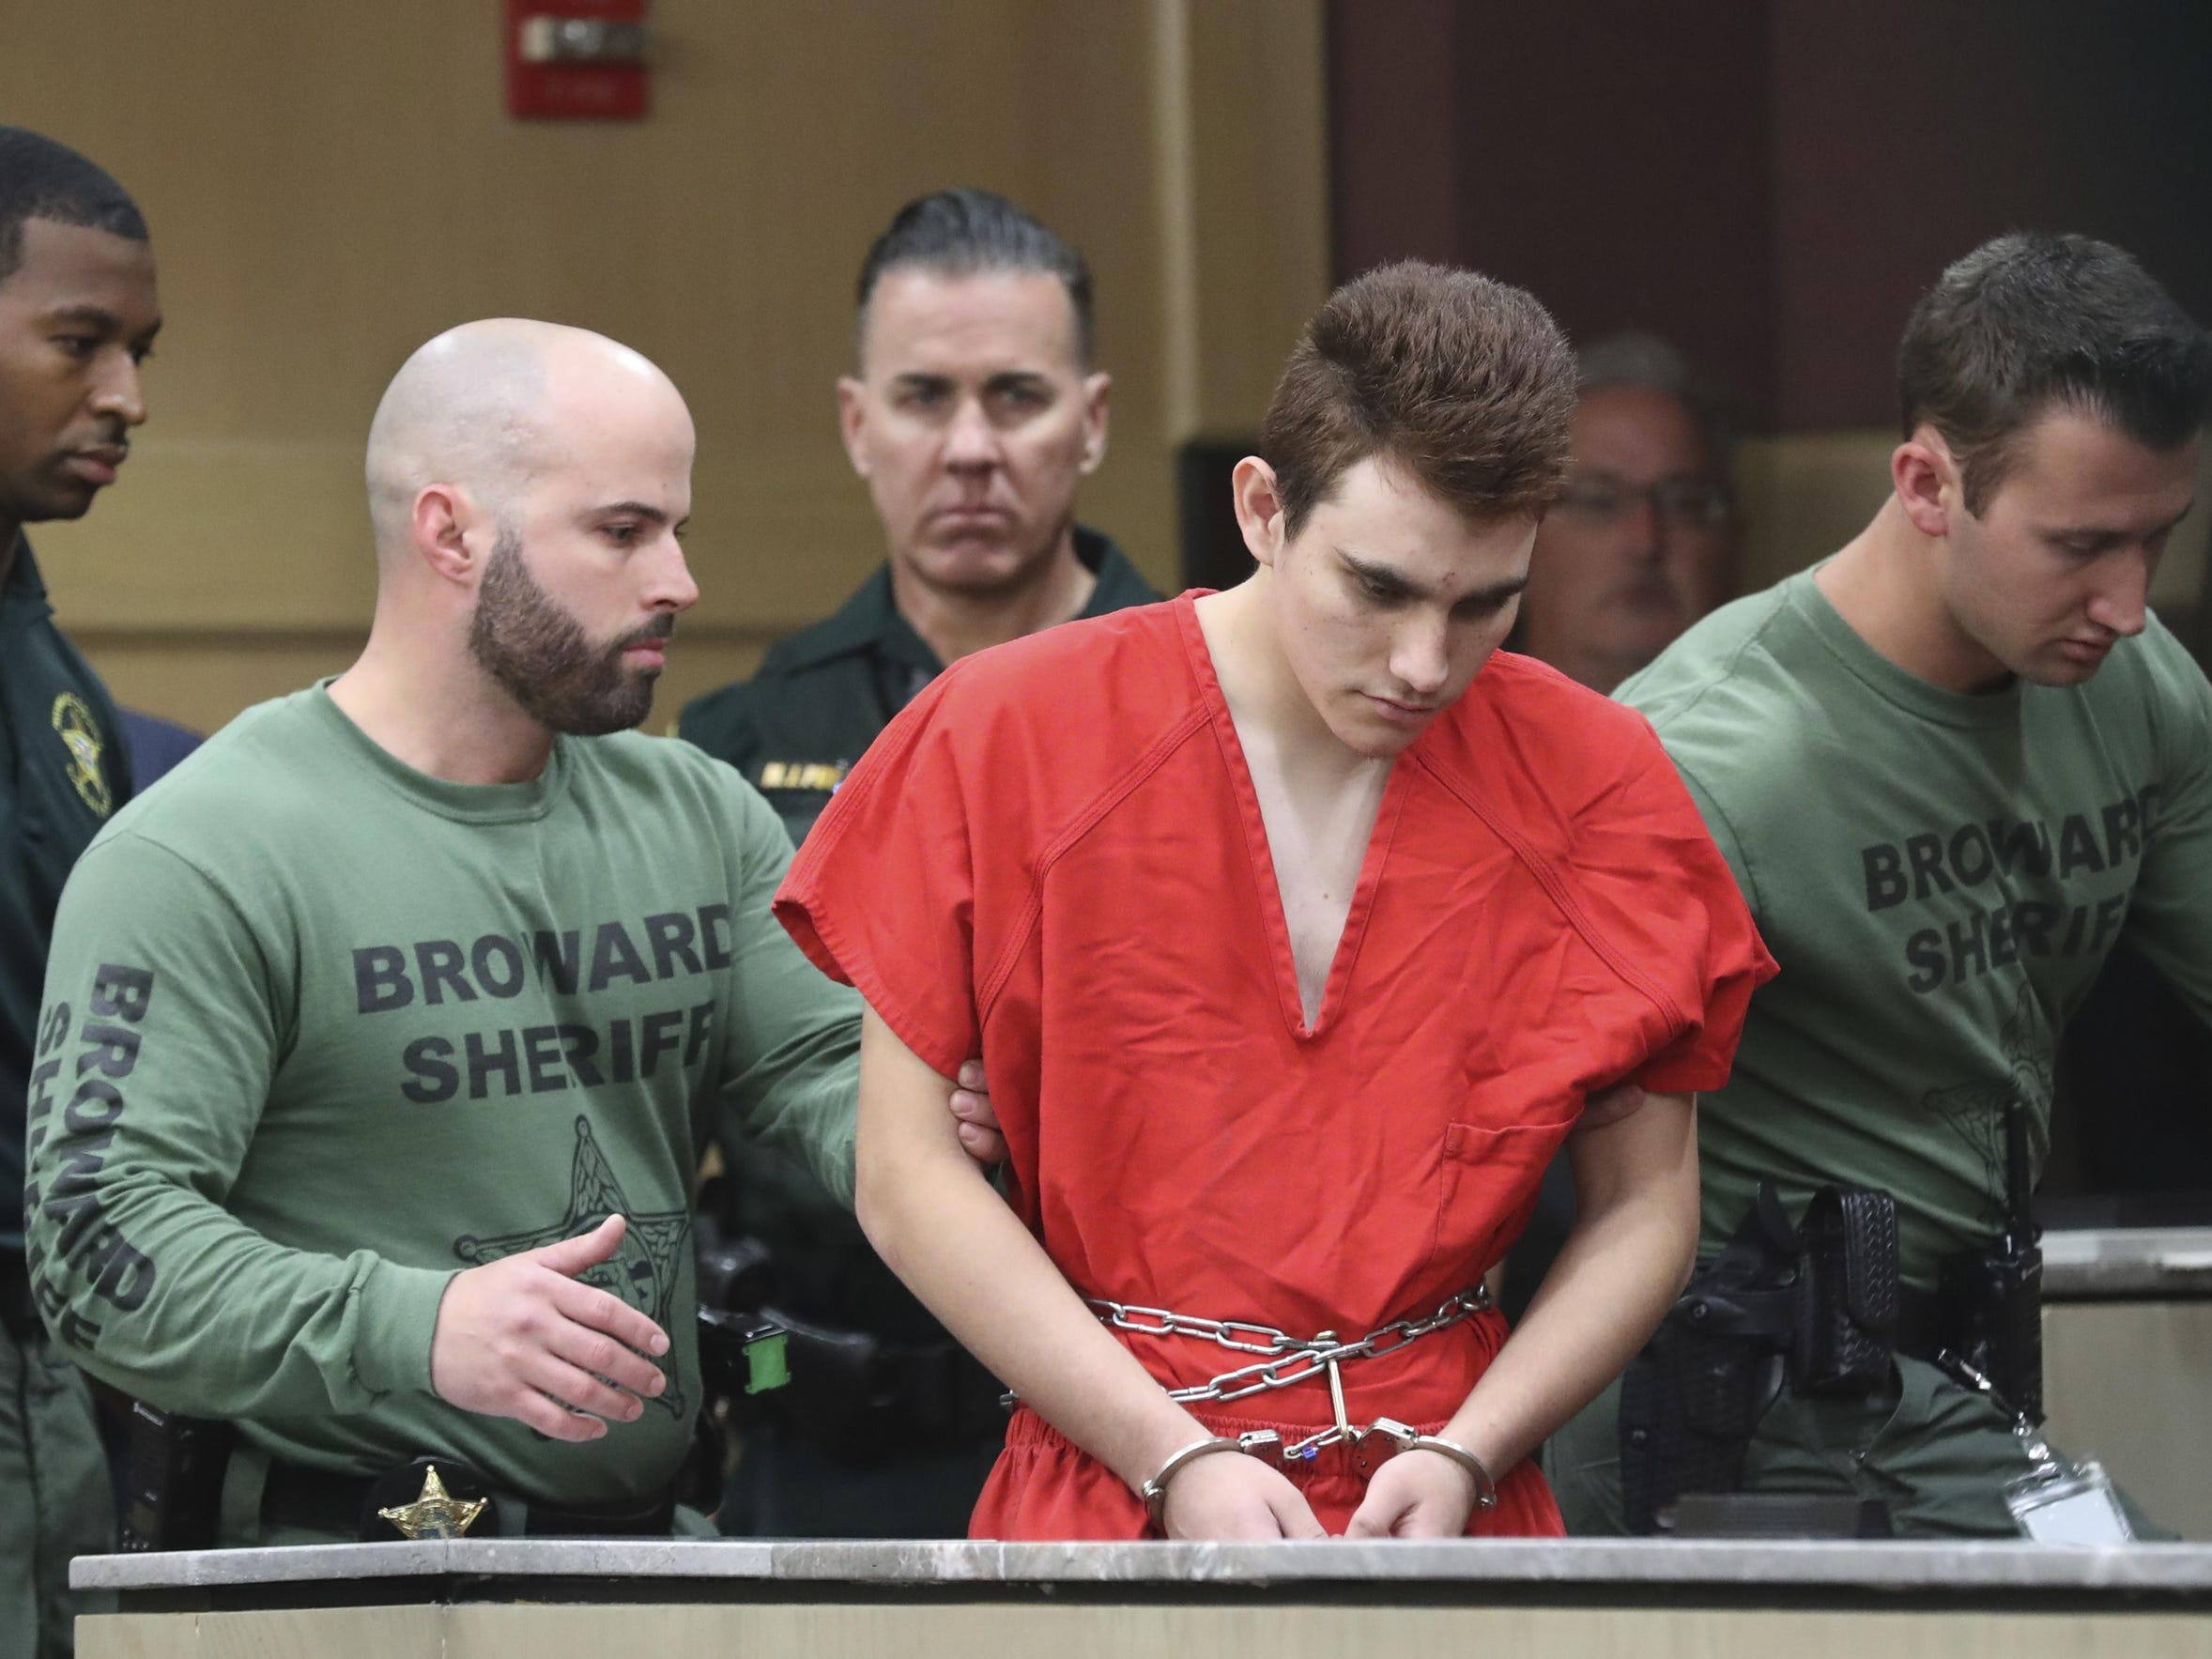 Nikolas Cruz is led into the courtroom before being arraigned at the Broward County Courthouse in Fort Lauderdale, Fla., on Wednesday, March 14, 2018. Cruz is accused of opening fire at Marjory Stoneman Douglas High School in Parkland, Fla., Feb. 14, killing 17 students and adults.